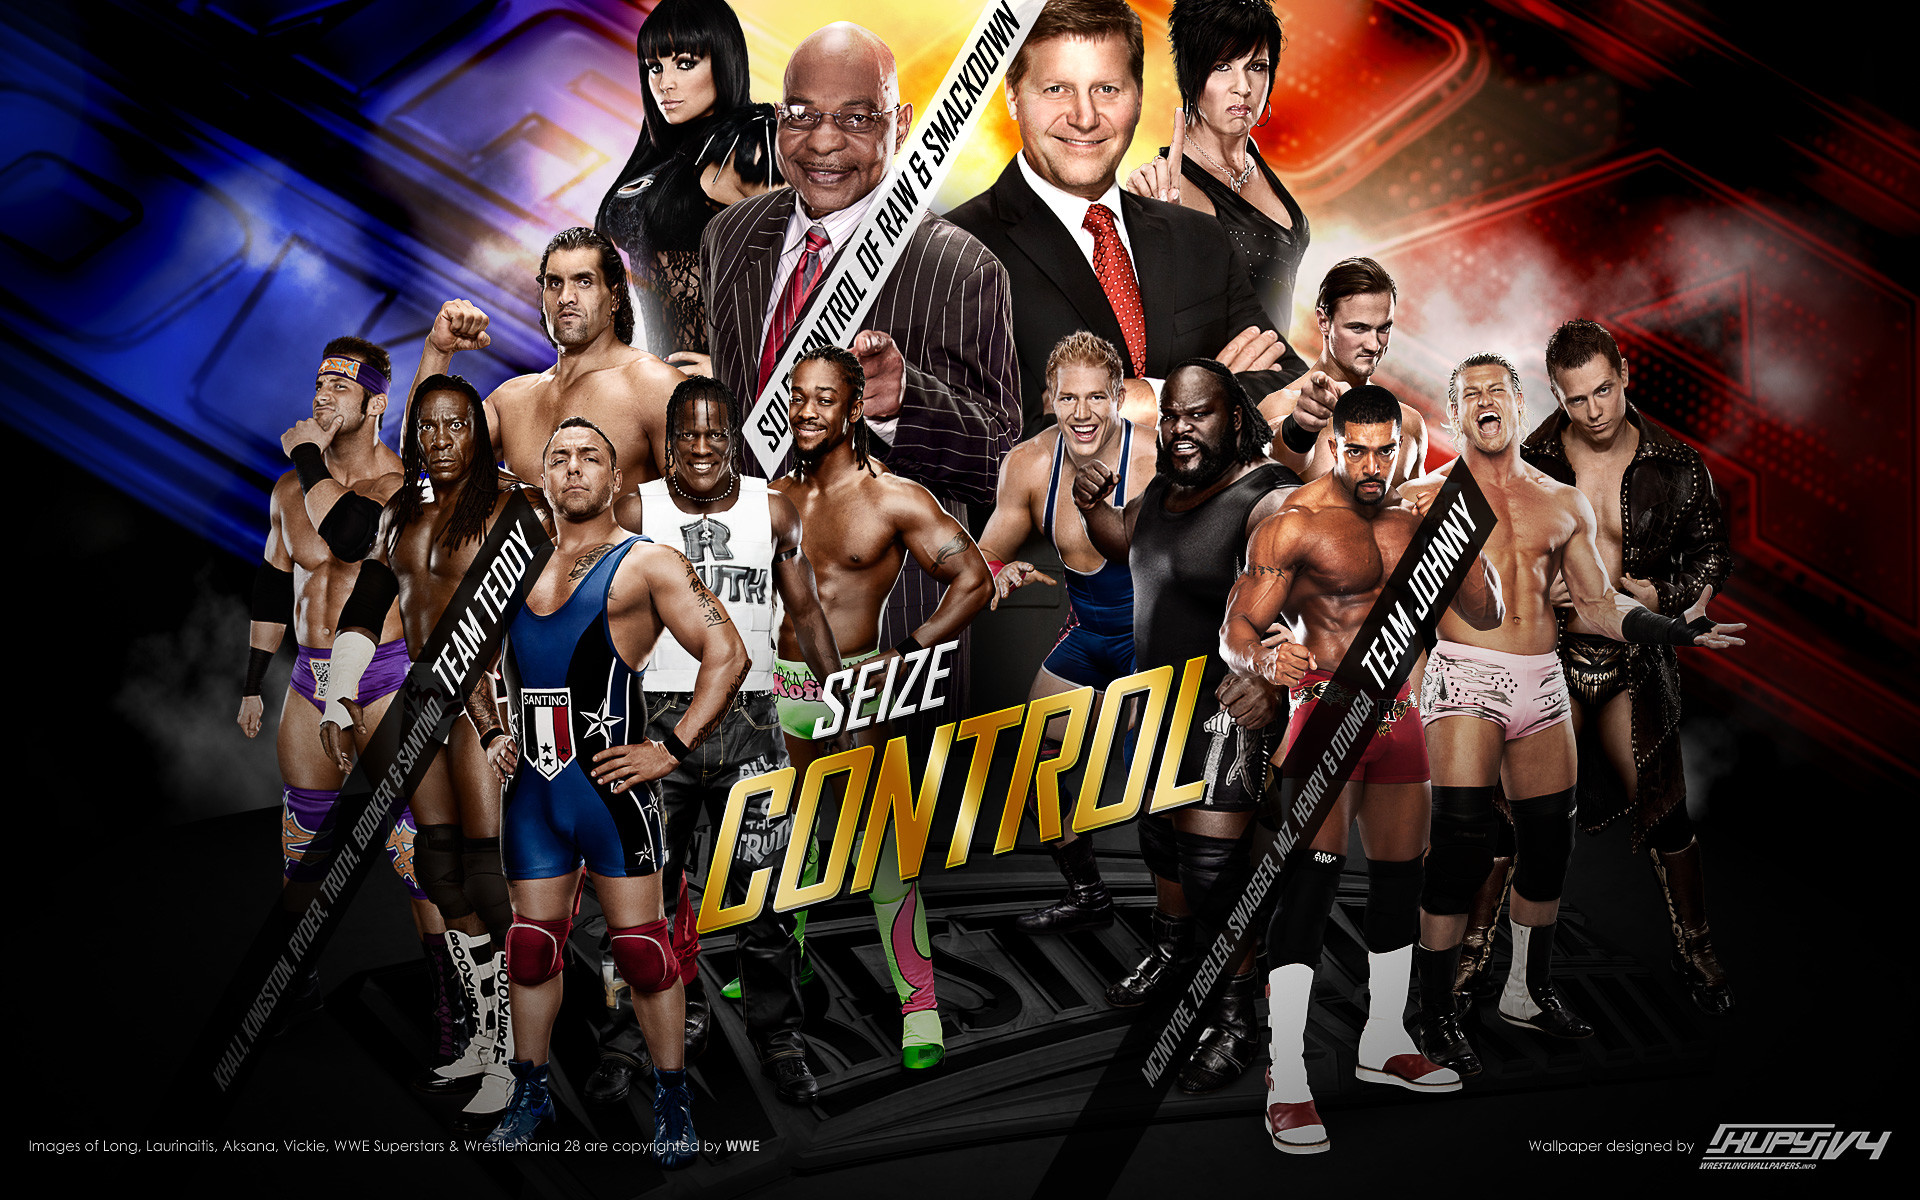 1920x1200 Team Teddy WrestleMania 28 WWE wallpaper 1920×1200 .